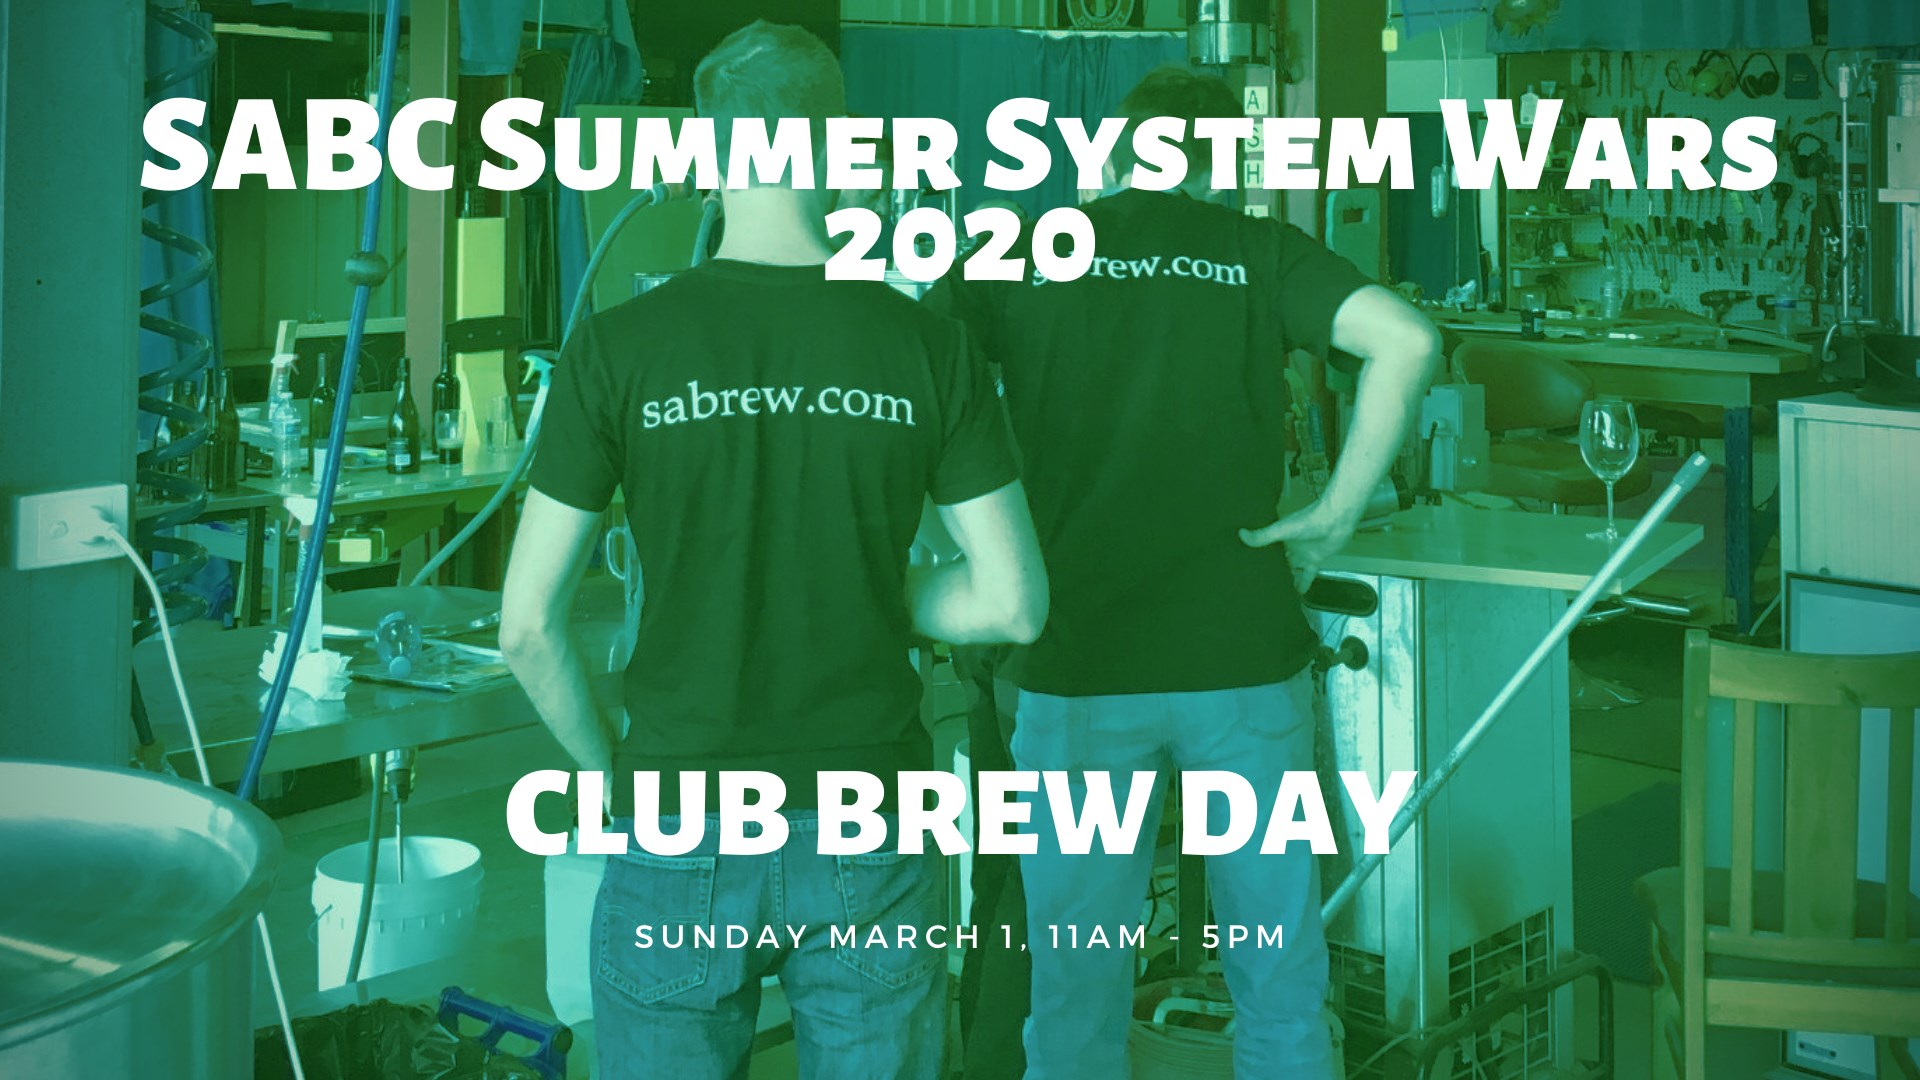 Collab club brew day on Sunday